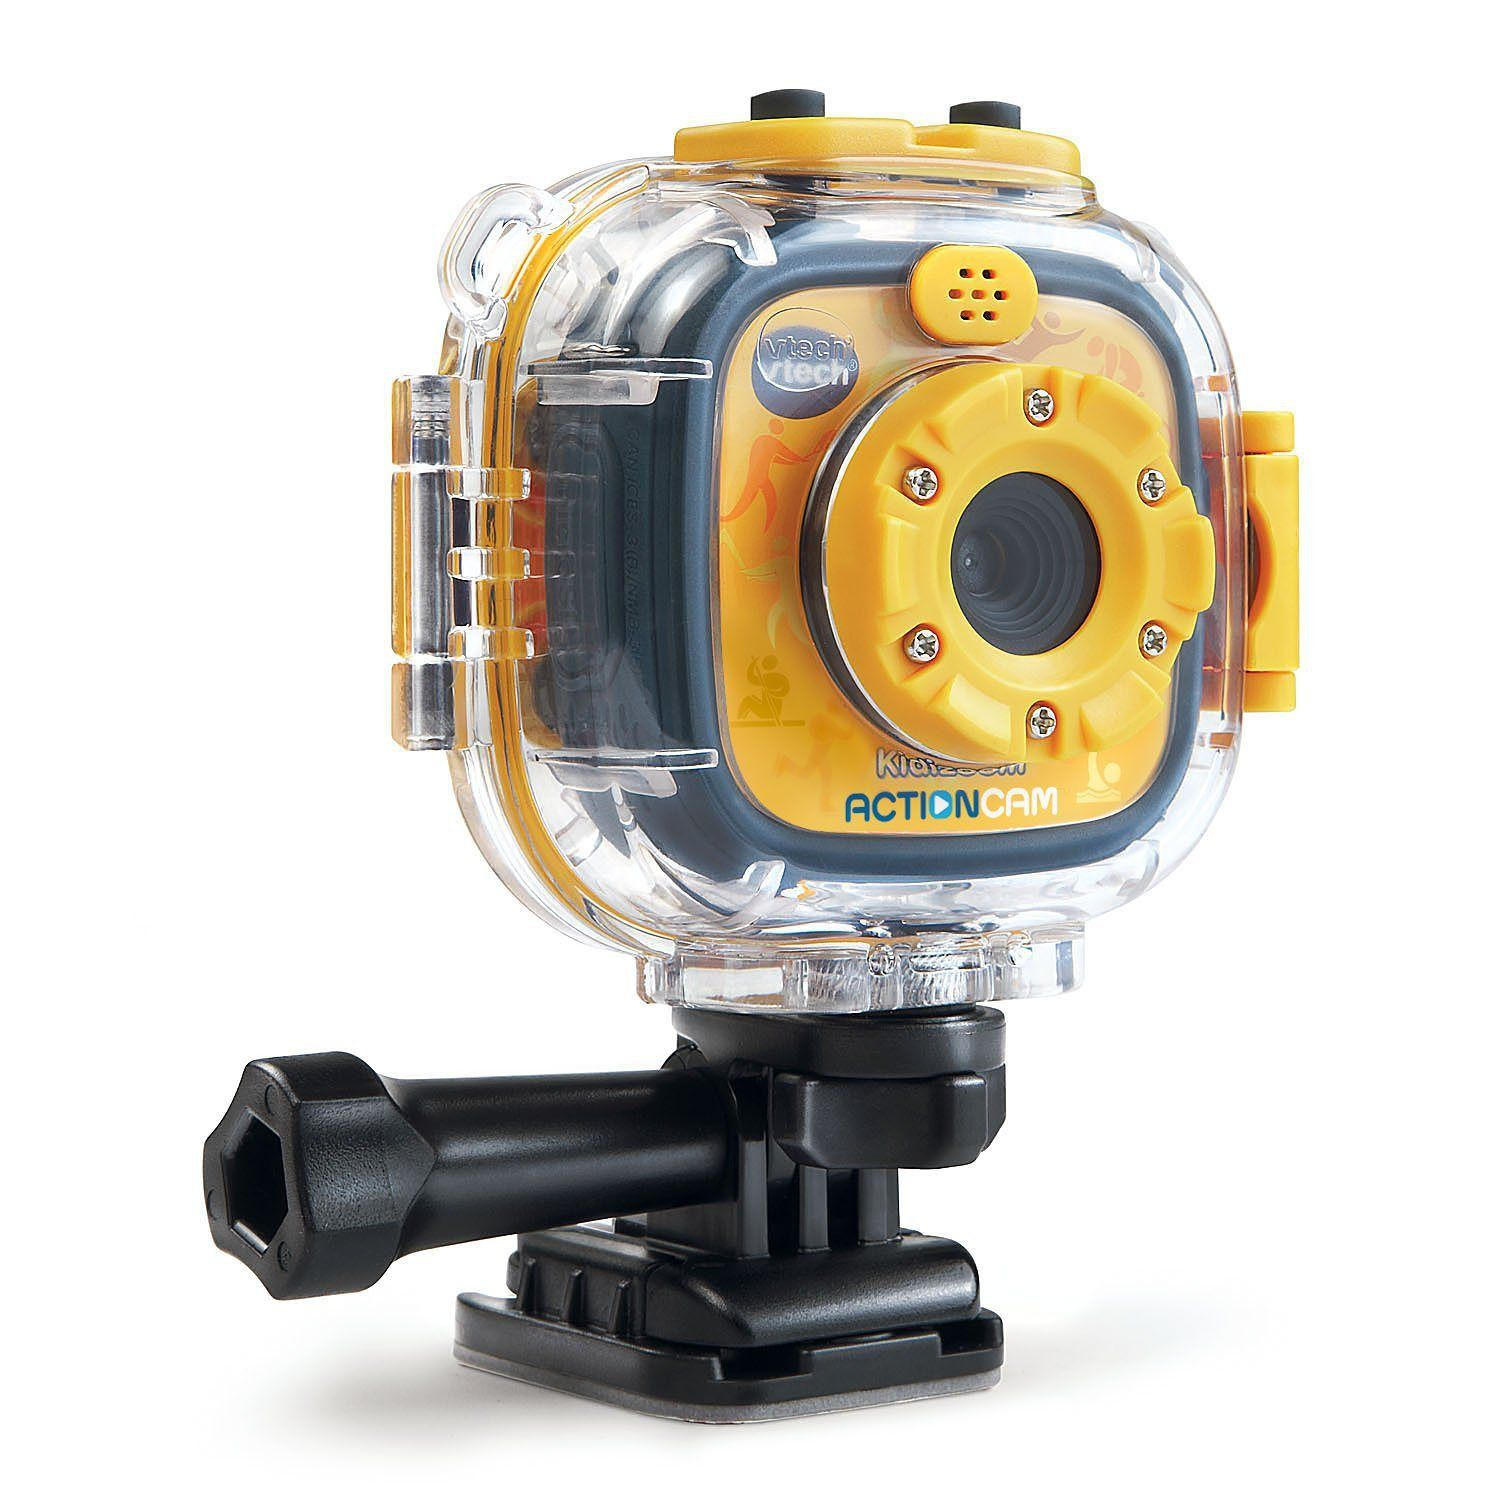 camcorder/water proof up to 6 ft of water!